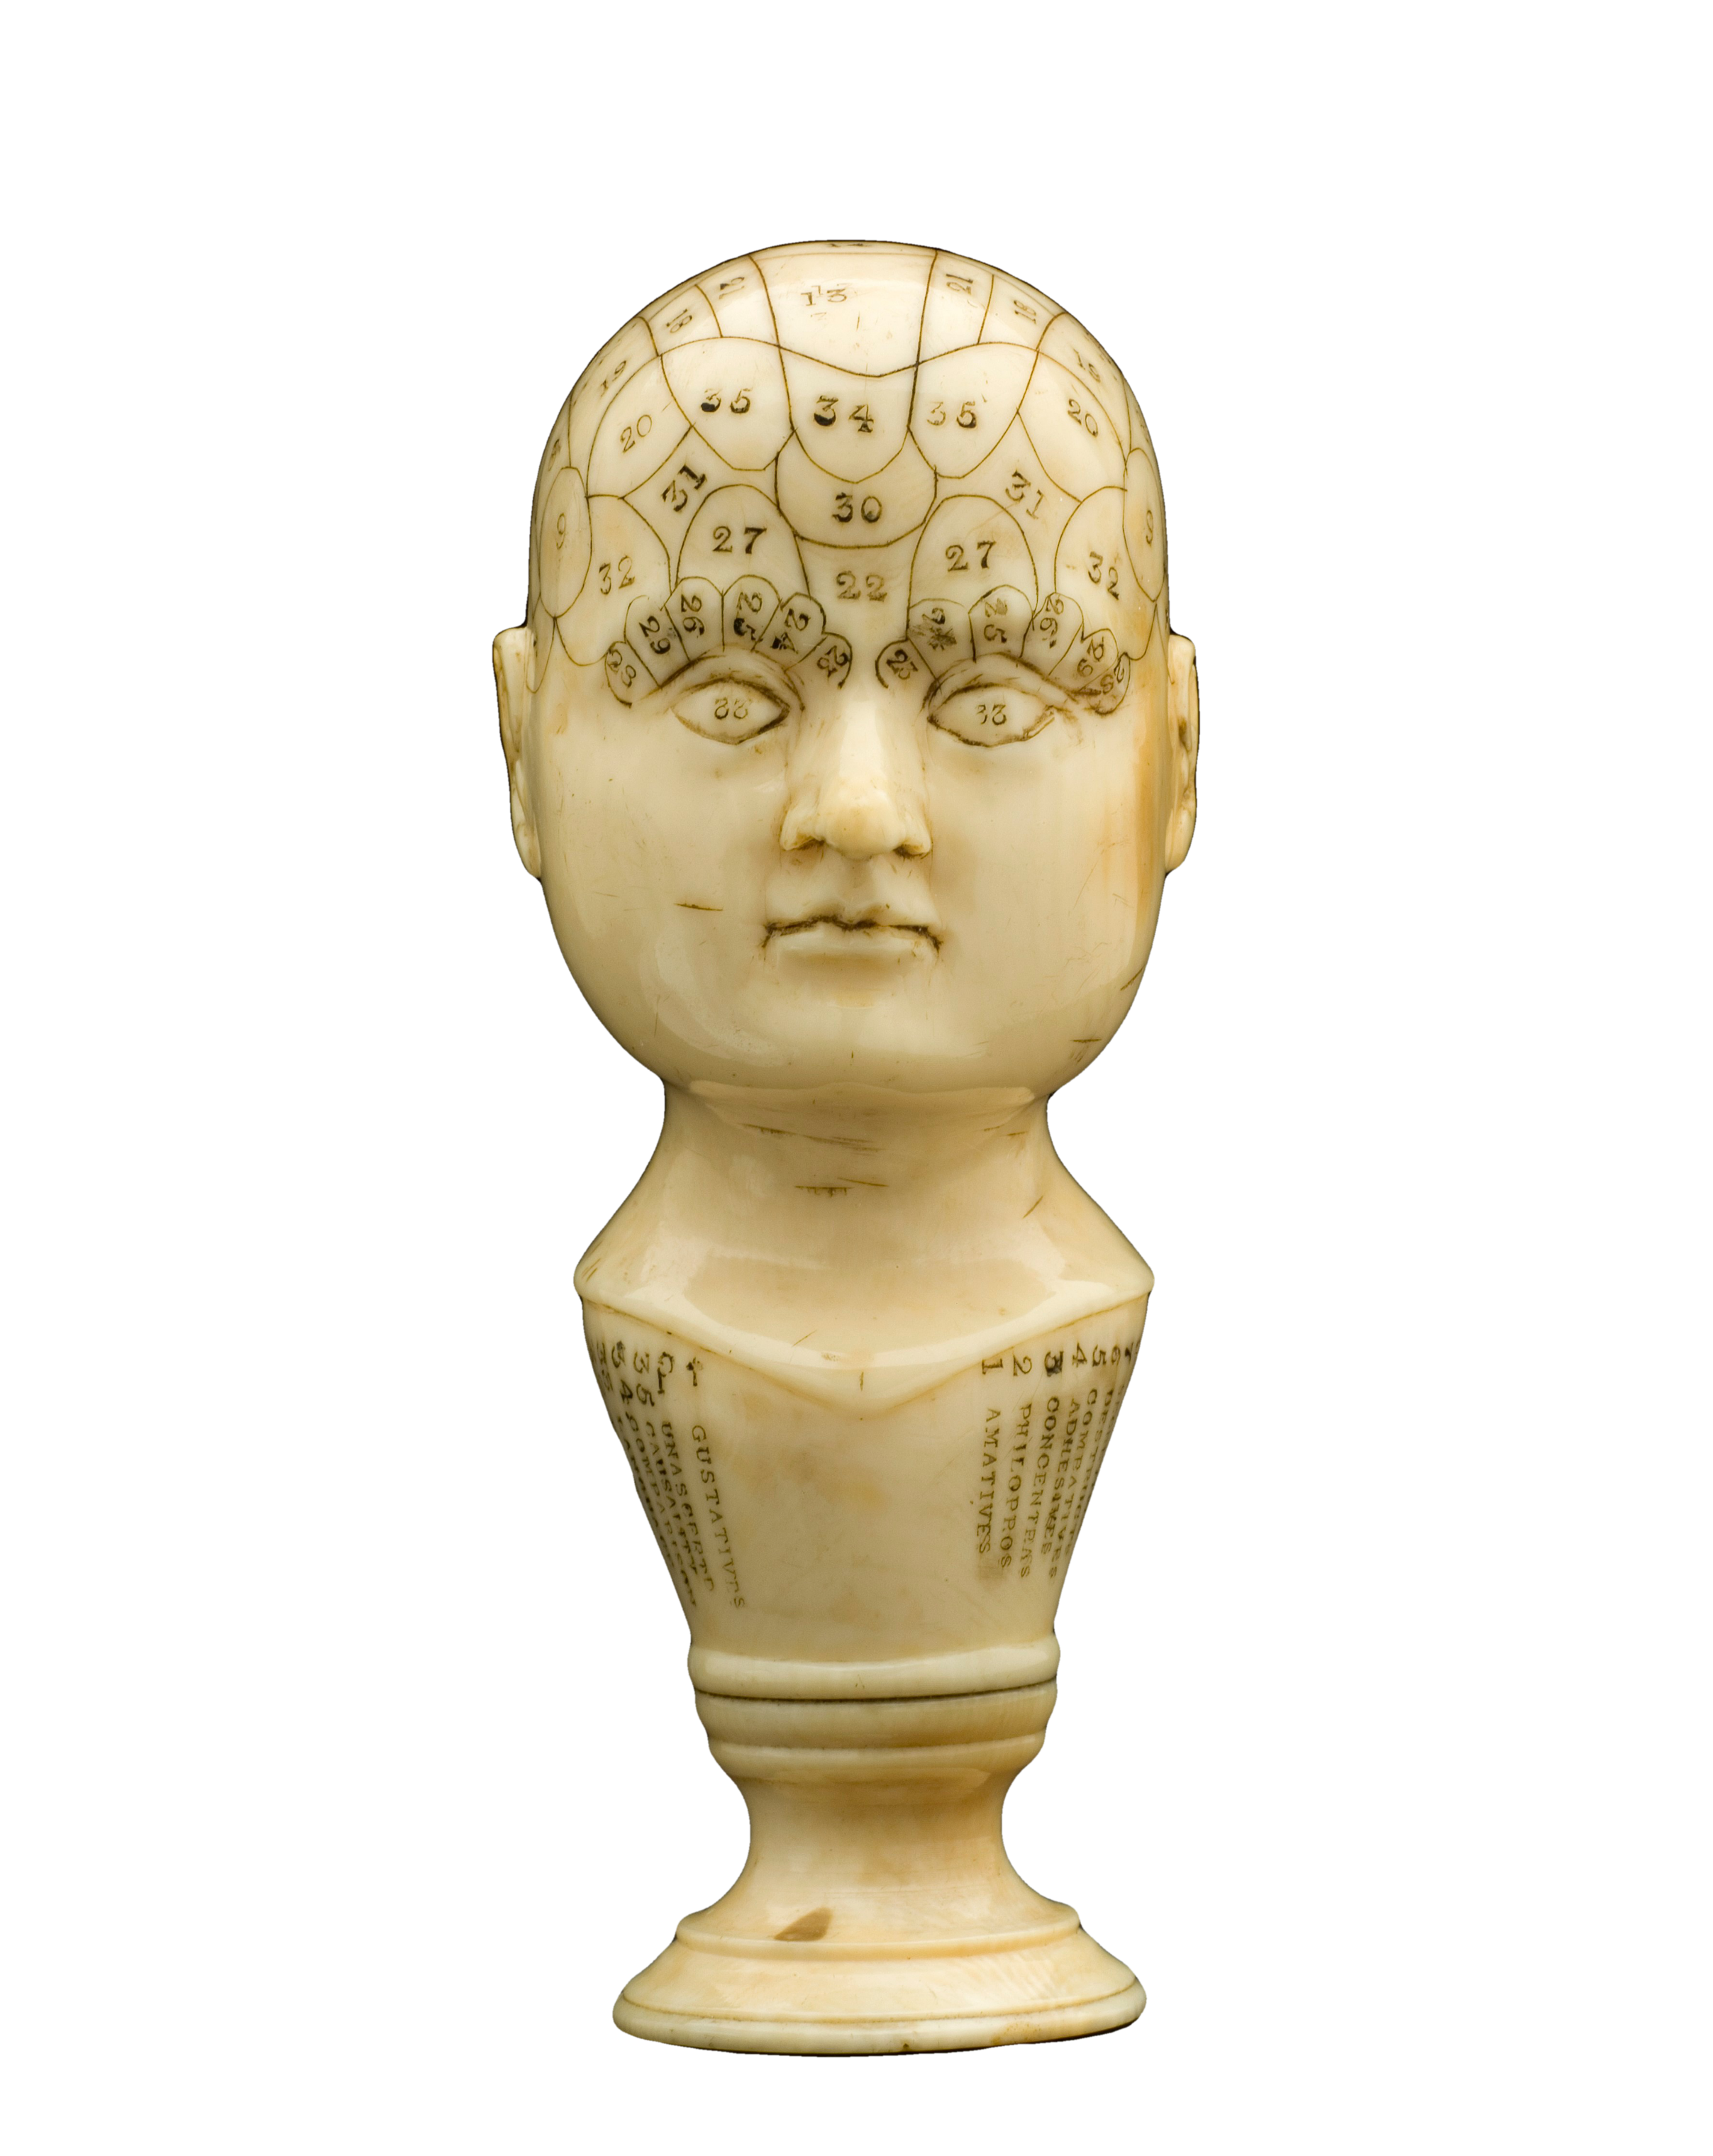 Pin By Vivian Weaver On Background Removed Png Phrenology Head Buddha Statue Vintage Images